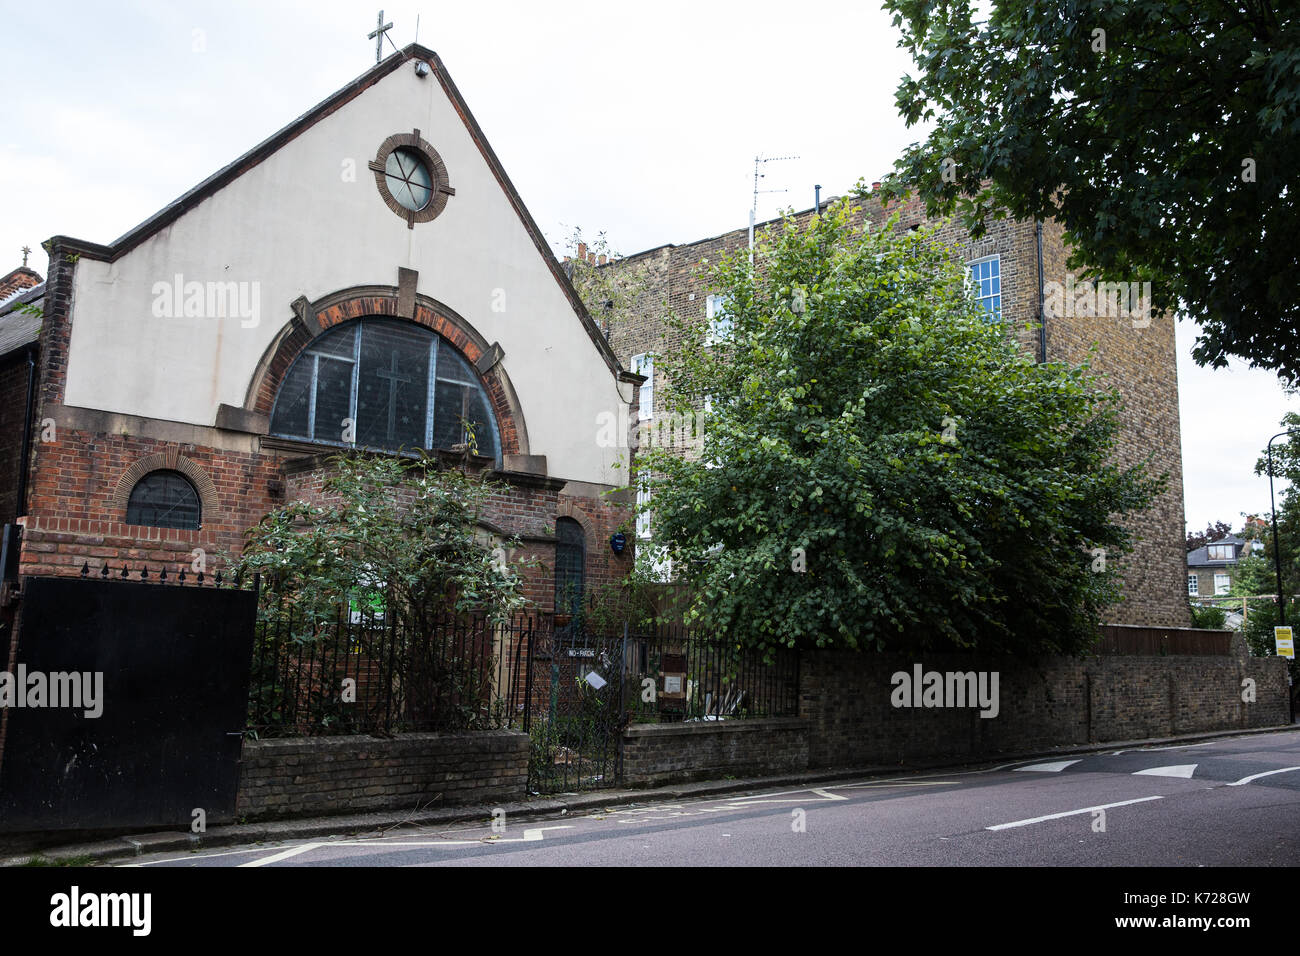 London, UK. 14th September, 2017. The historic Rochester Square Spiritualist Temple in Camden founded by Sir Arthur Conan Doyle. Blur guitarist Graham Coxon, who lived next to the temple for 18 years, has joined more than 100 campaigners fighting plans involving developer NTA Planning to demolish it and replace it with a 3-storey block of flats and flexible arts-based community space. Credit: Mark Kerrison/Alamy Live News - Stock Image